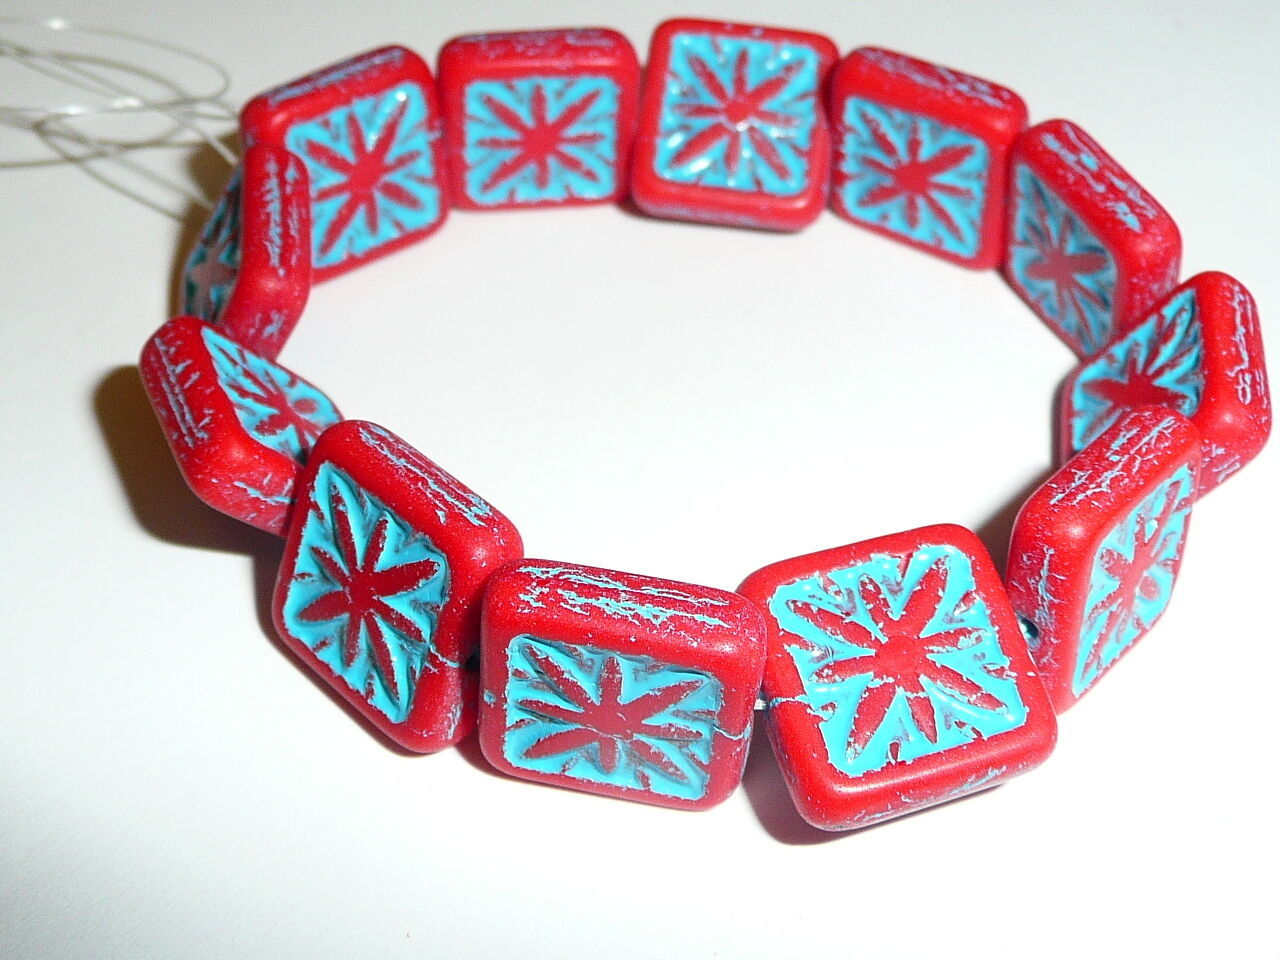 Primary image for Carved Czech Glass Matte Red Compass w/ Turquoise Wash Square Beads - 15mm